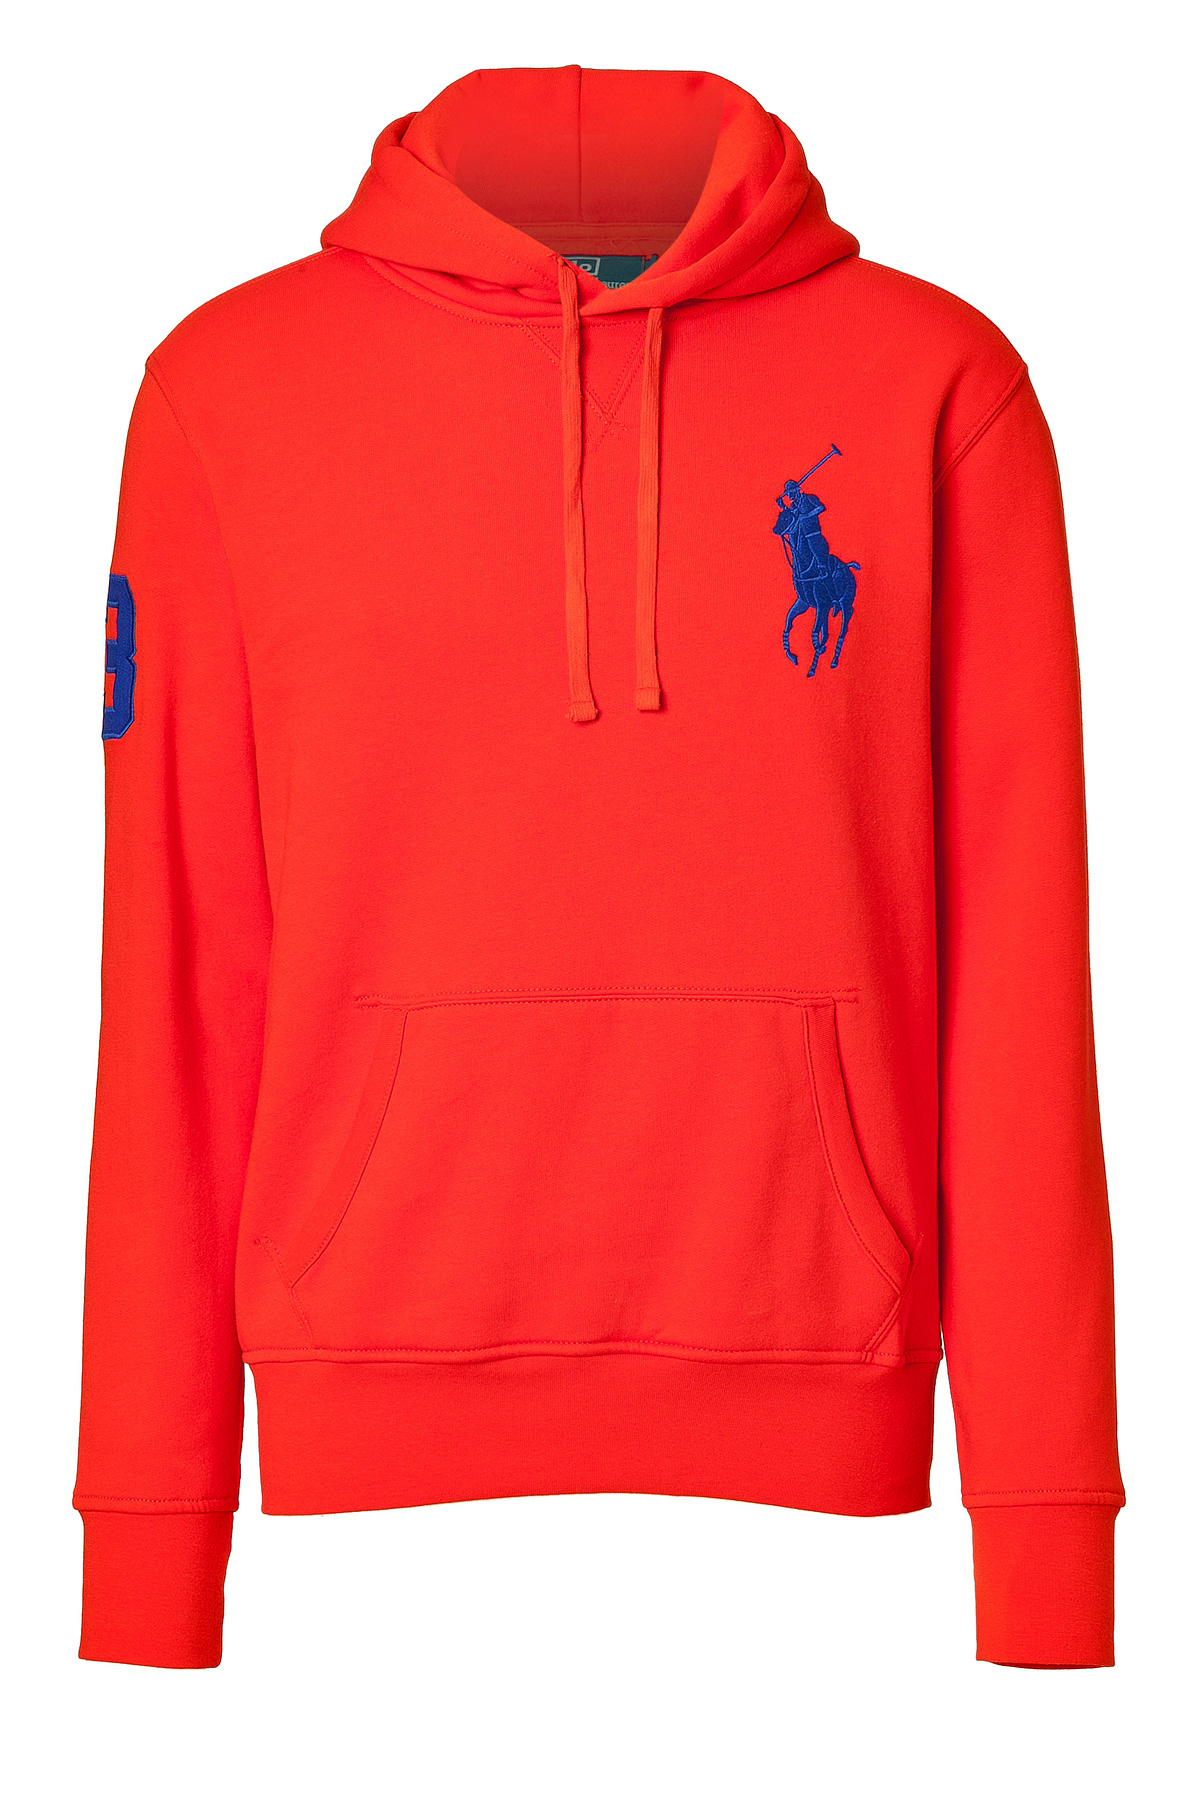 polo ralph lauren cotton blend logo hoodie in red for men lyst. Black Bedroom Furniture Sets. Home Design Ideas